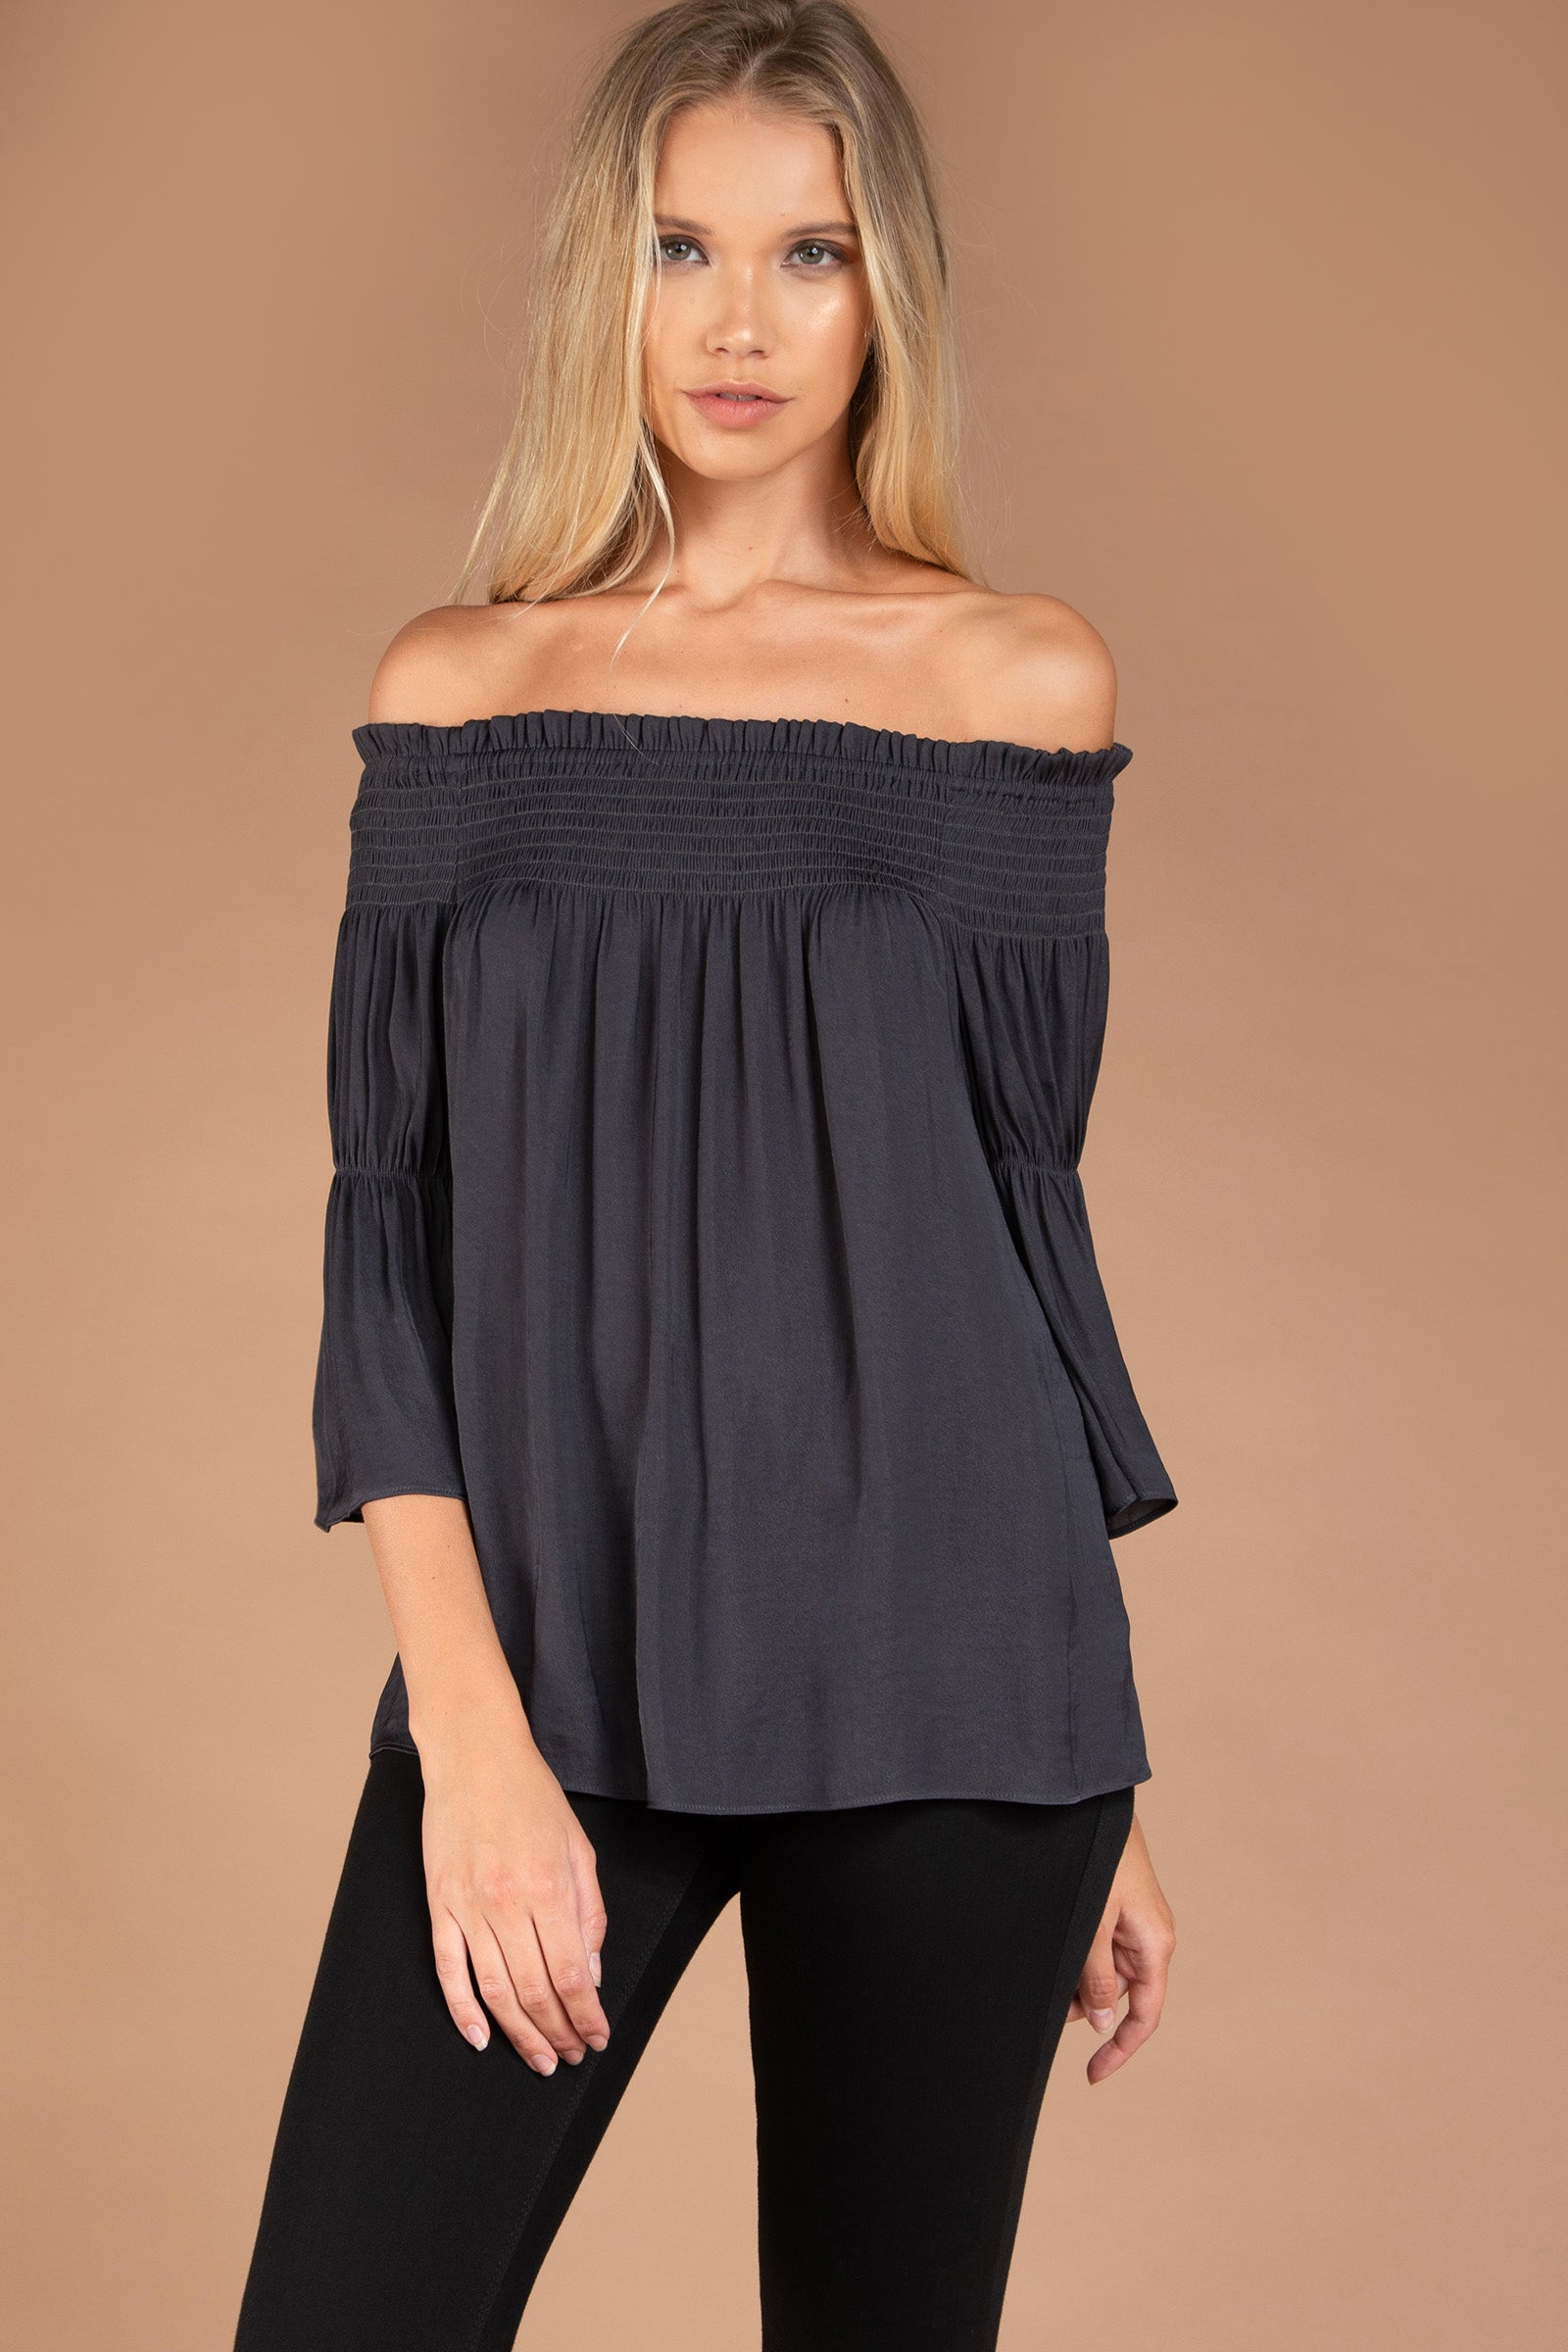 SB114462 CHARCOAL FRONT